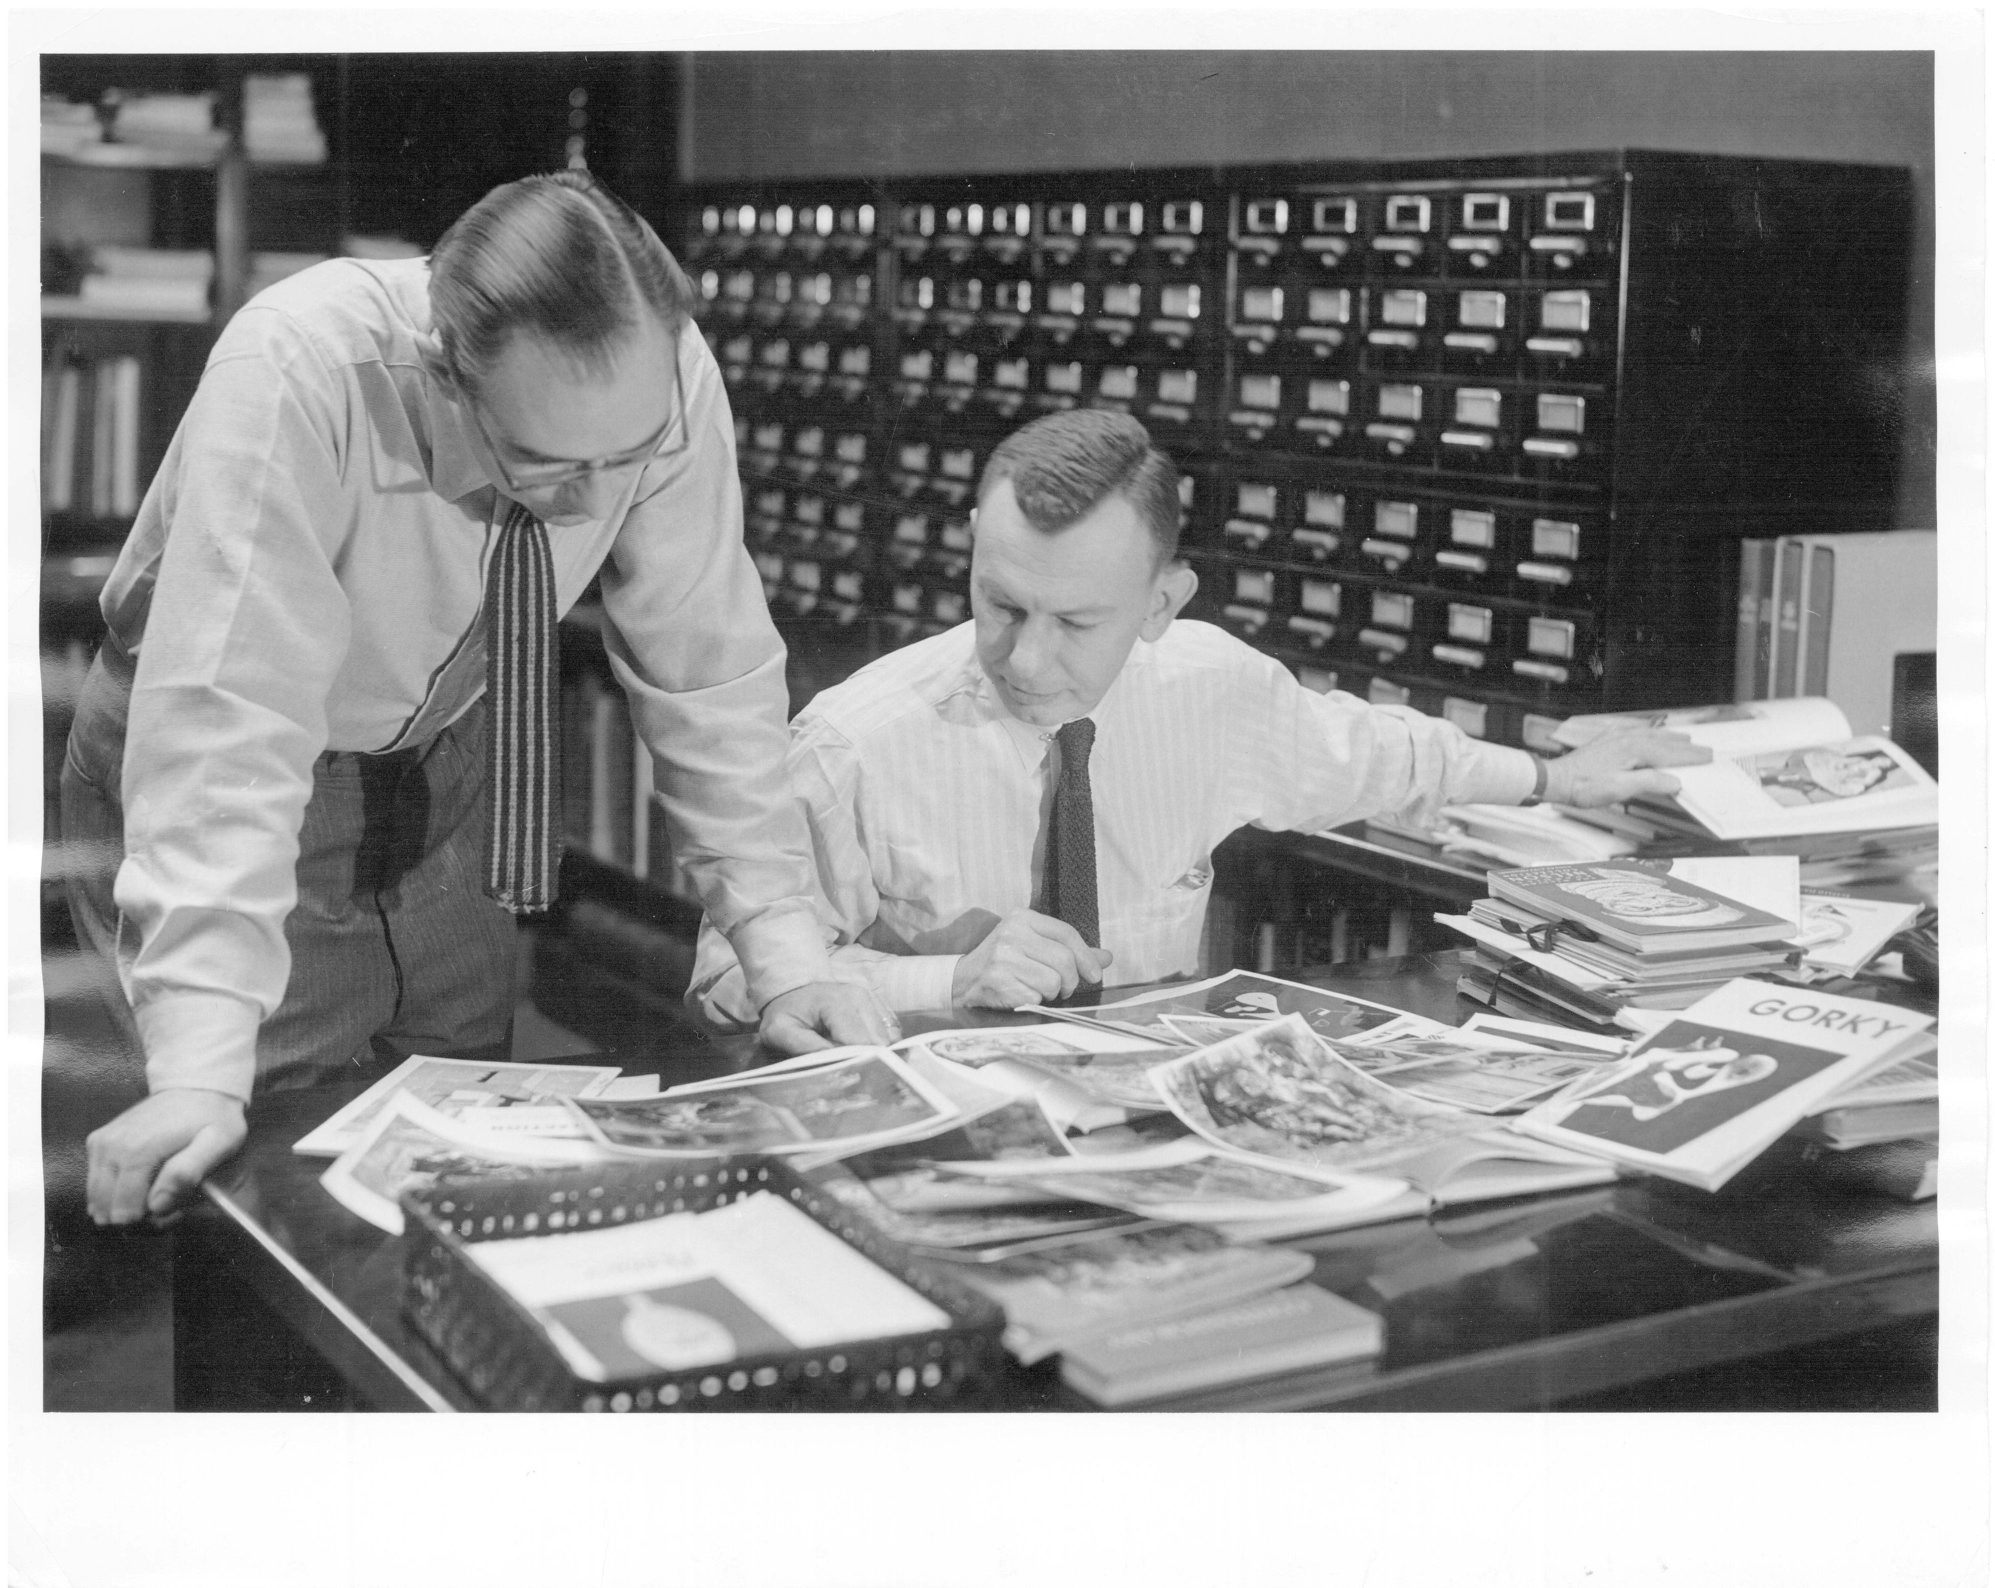 """Archive 1952 photo from the Albright Knox Art Gallery shows curator Patrick J. Kelleher with gallery director Edgar C. Schenck. Kelleher was among the 345 """"Monuments Men"""" whose mission was to find and return art treasures looted in Europe by the Nazis during World War II."""